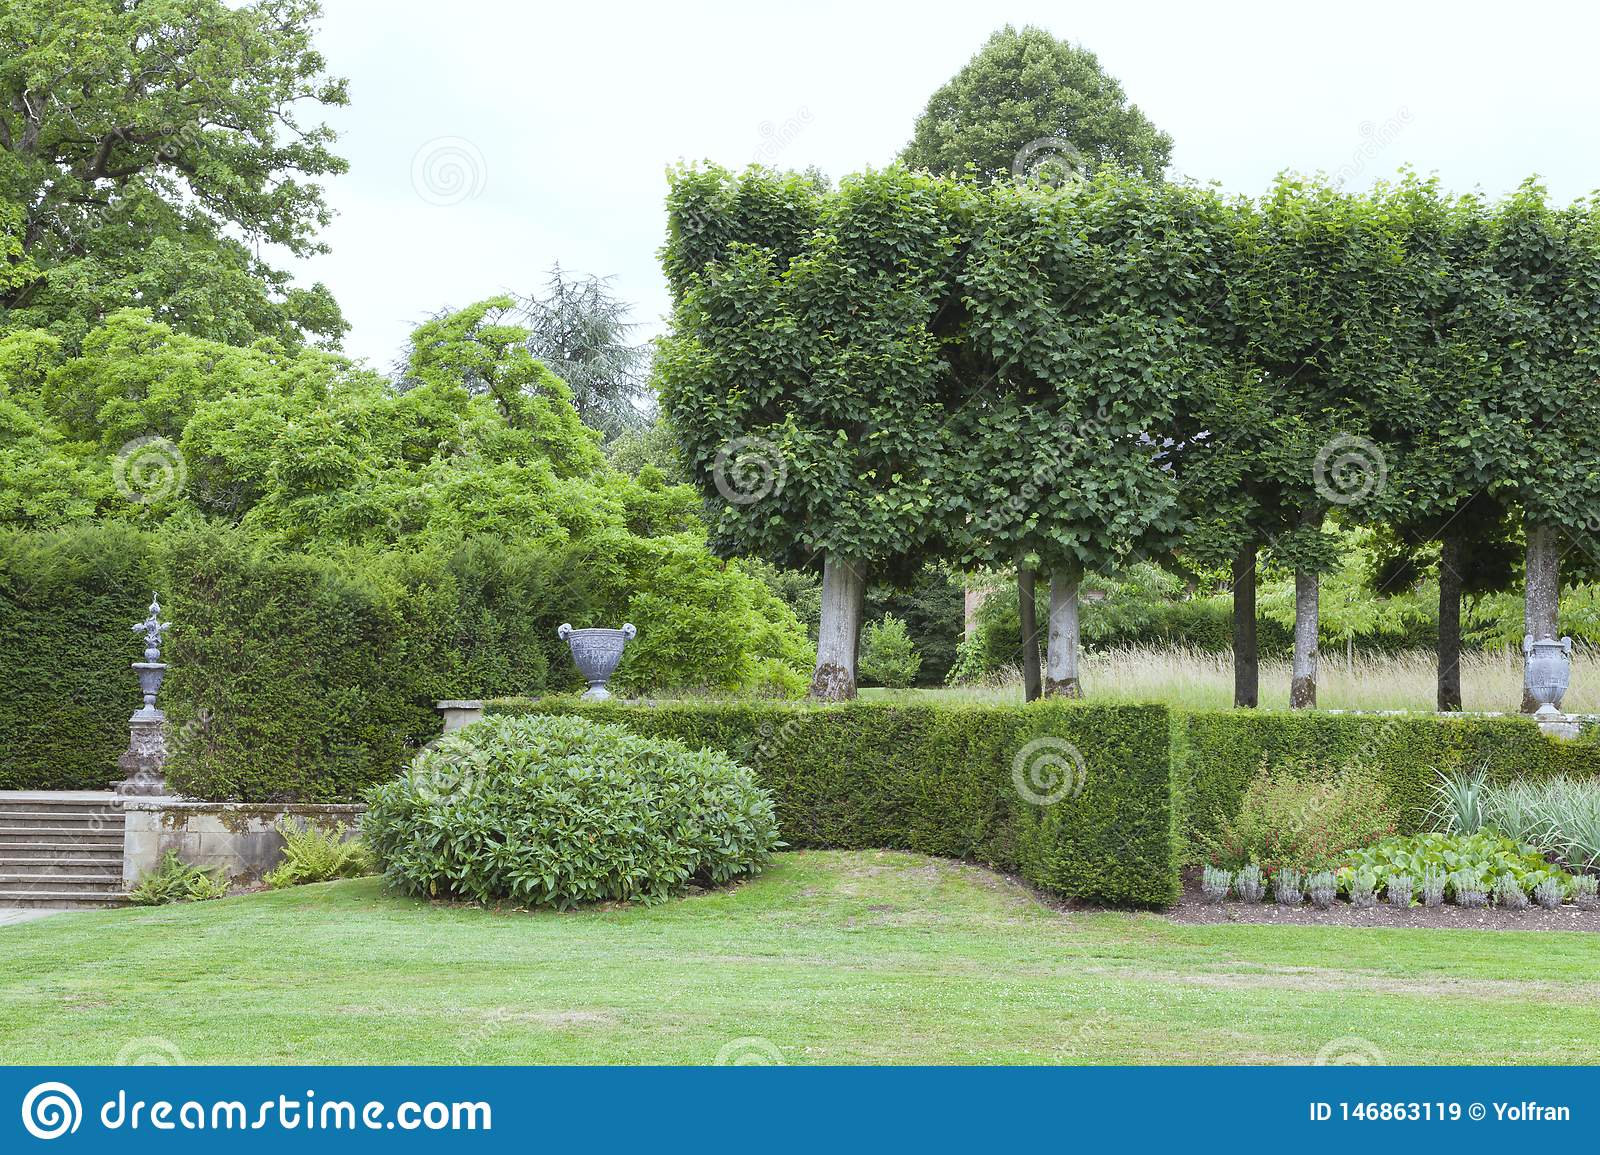 Elegant Landscaped Garden With Hedge Topiary Trees Stock Image Image Of Landscaped English 146863119